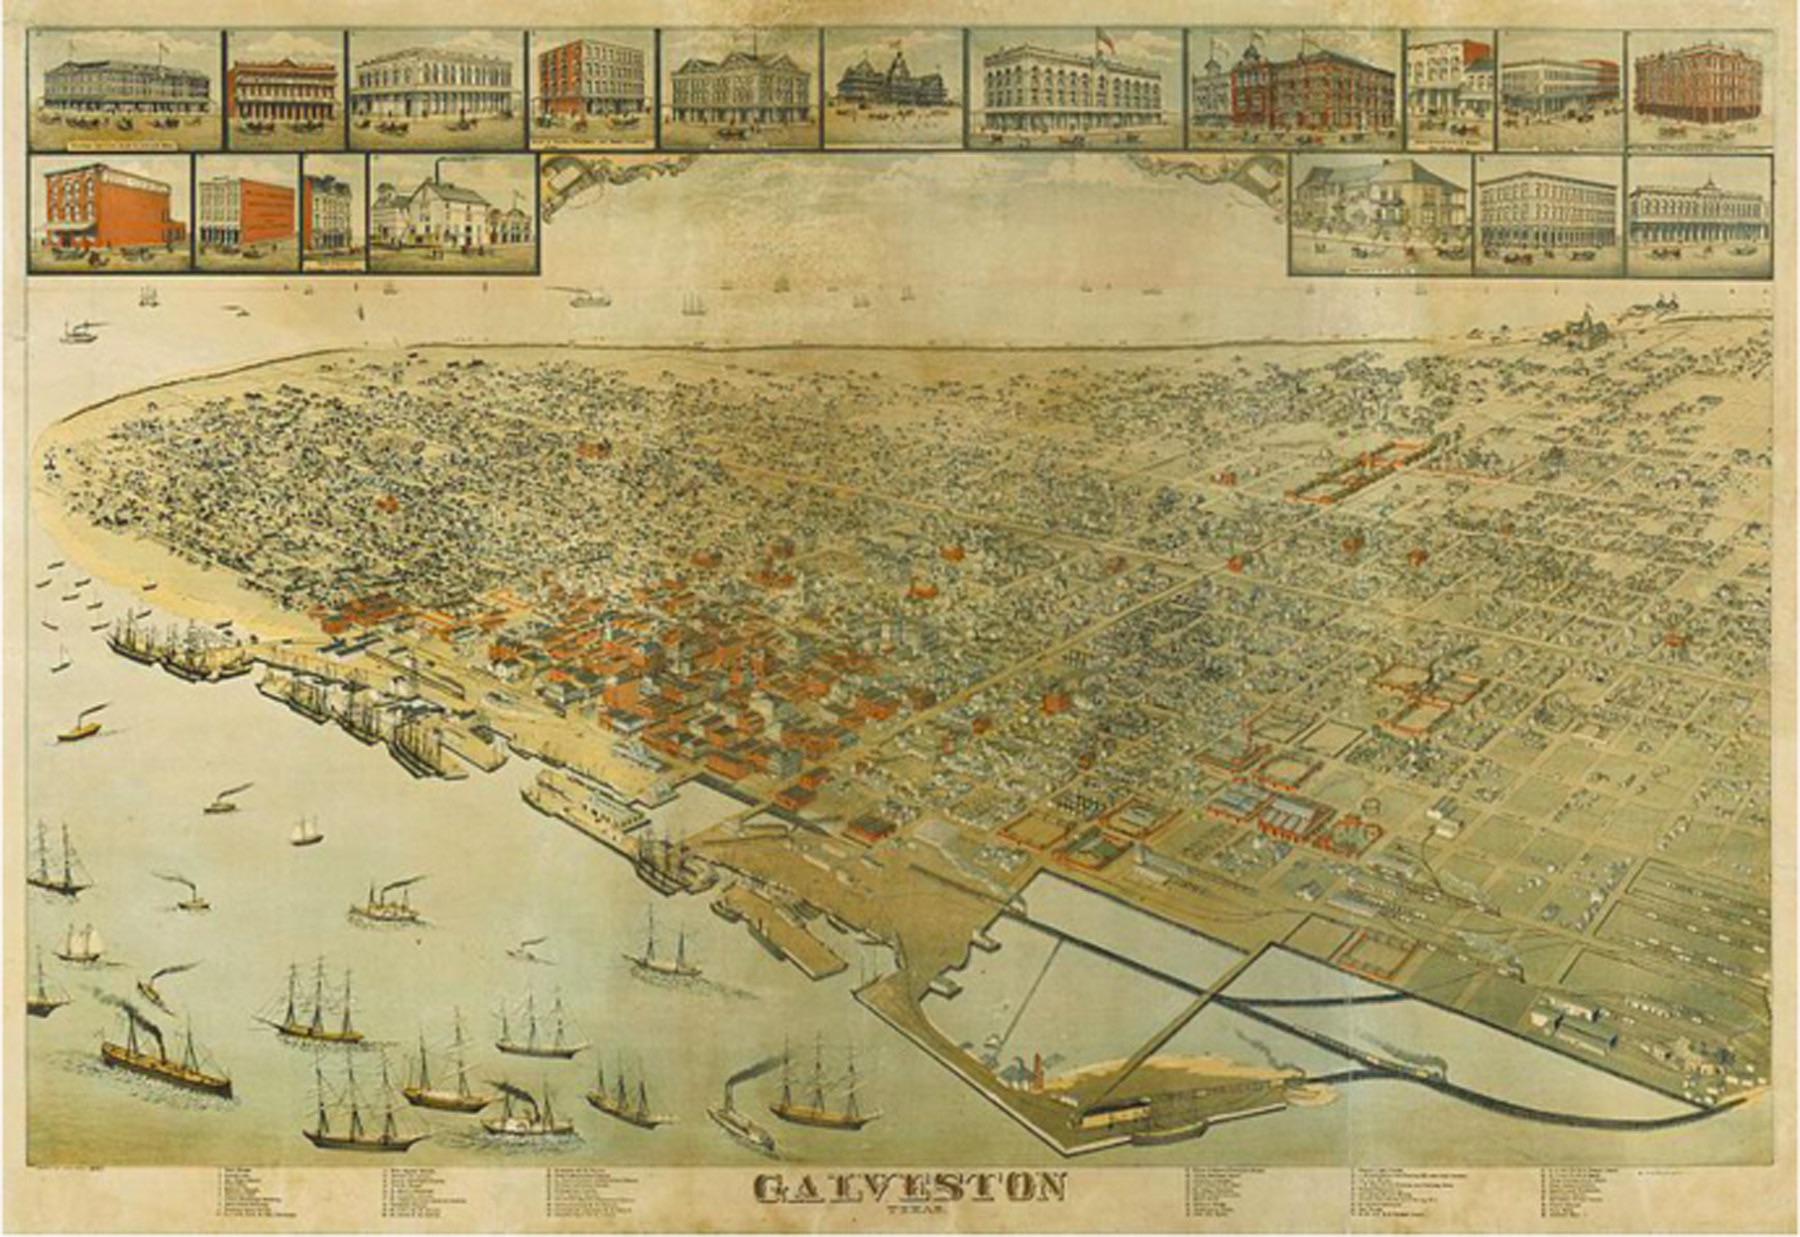 East End of Galveston Island, 1885